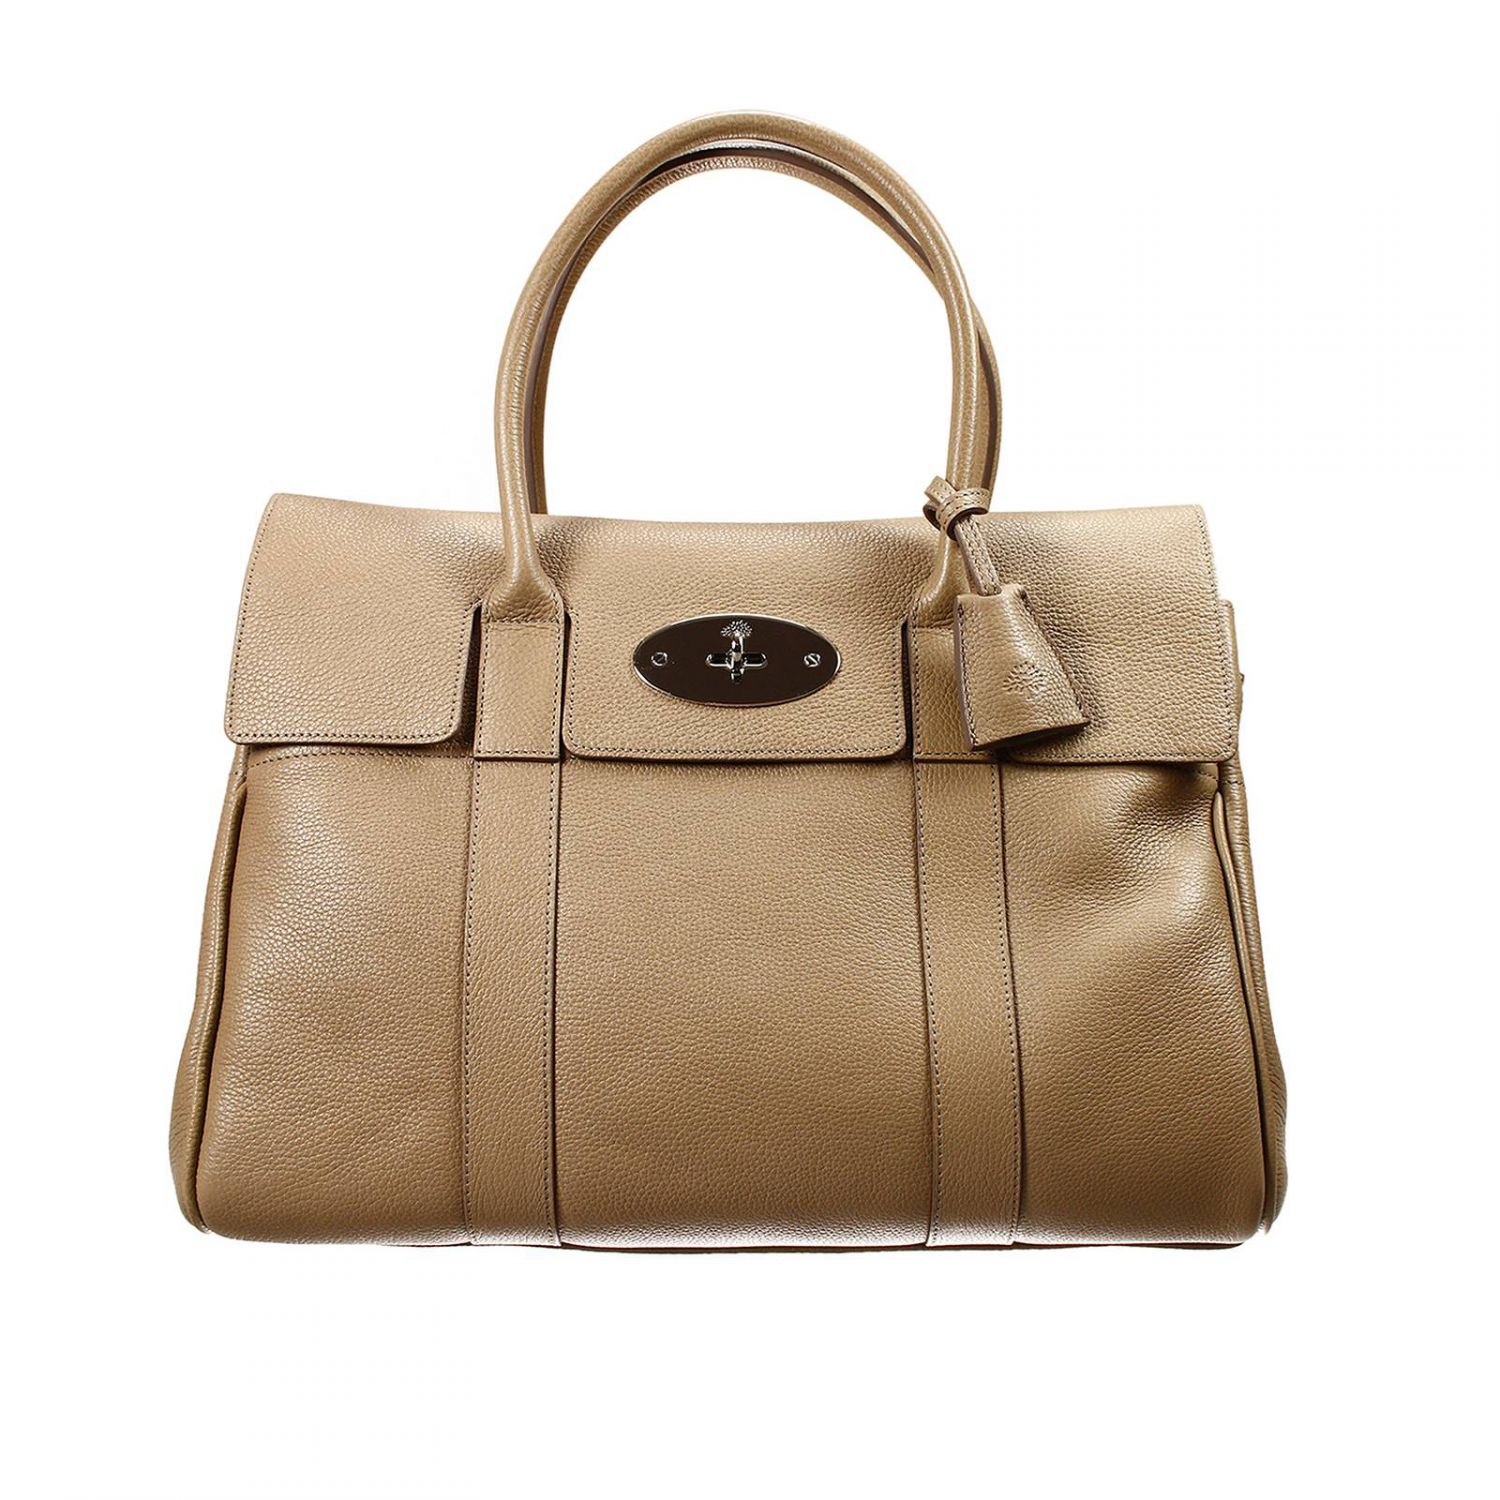 Mulberry handbag bayswater leather in gray lyst for The bayswater